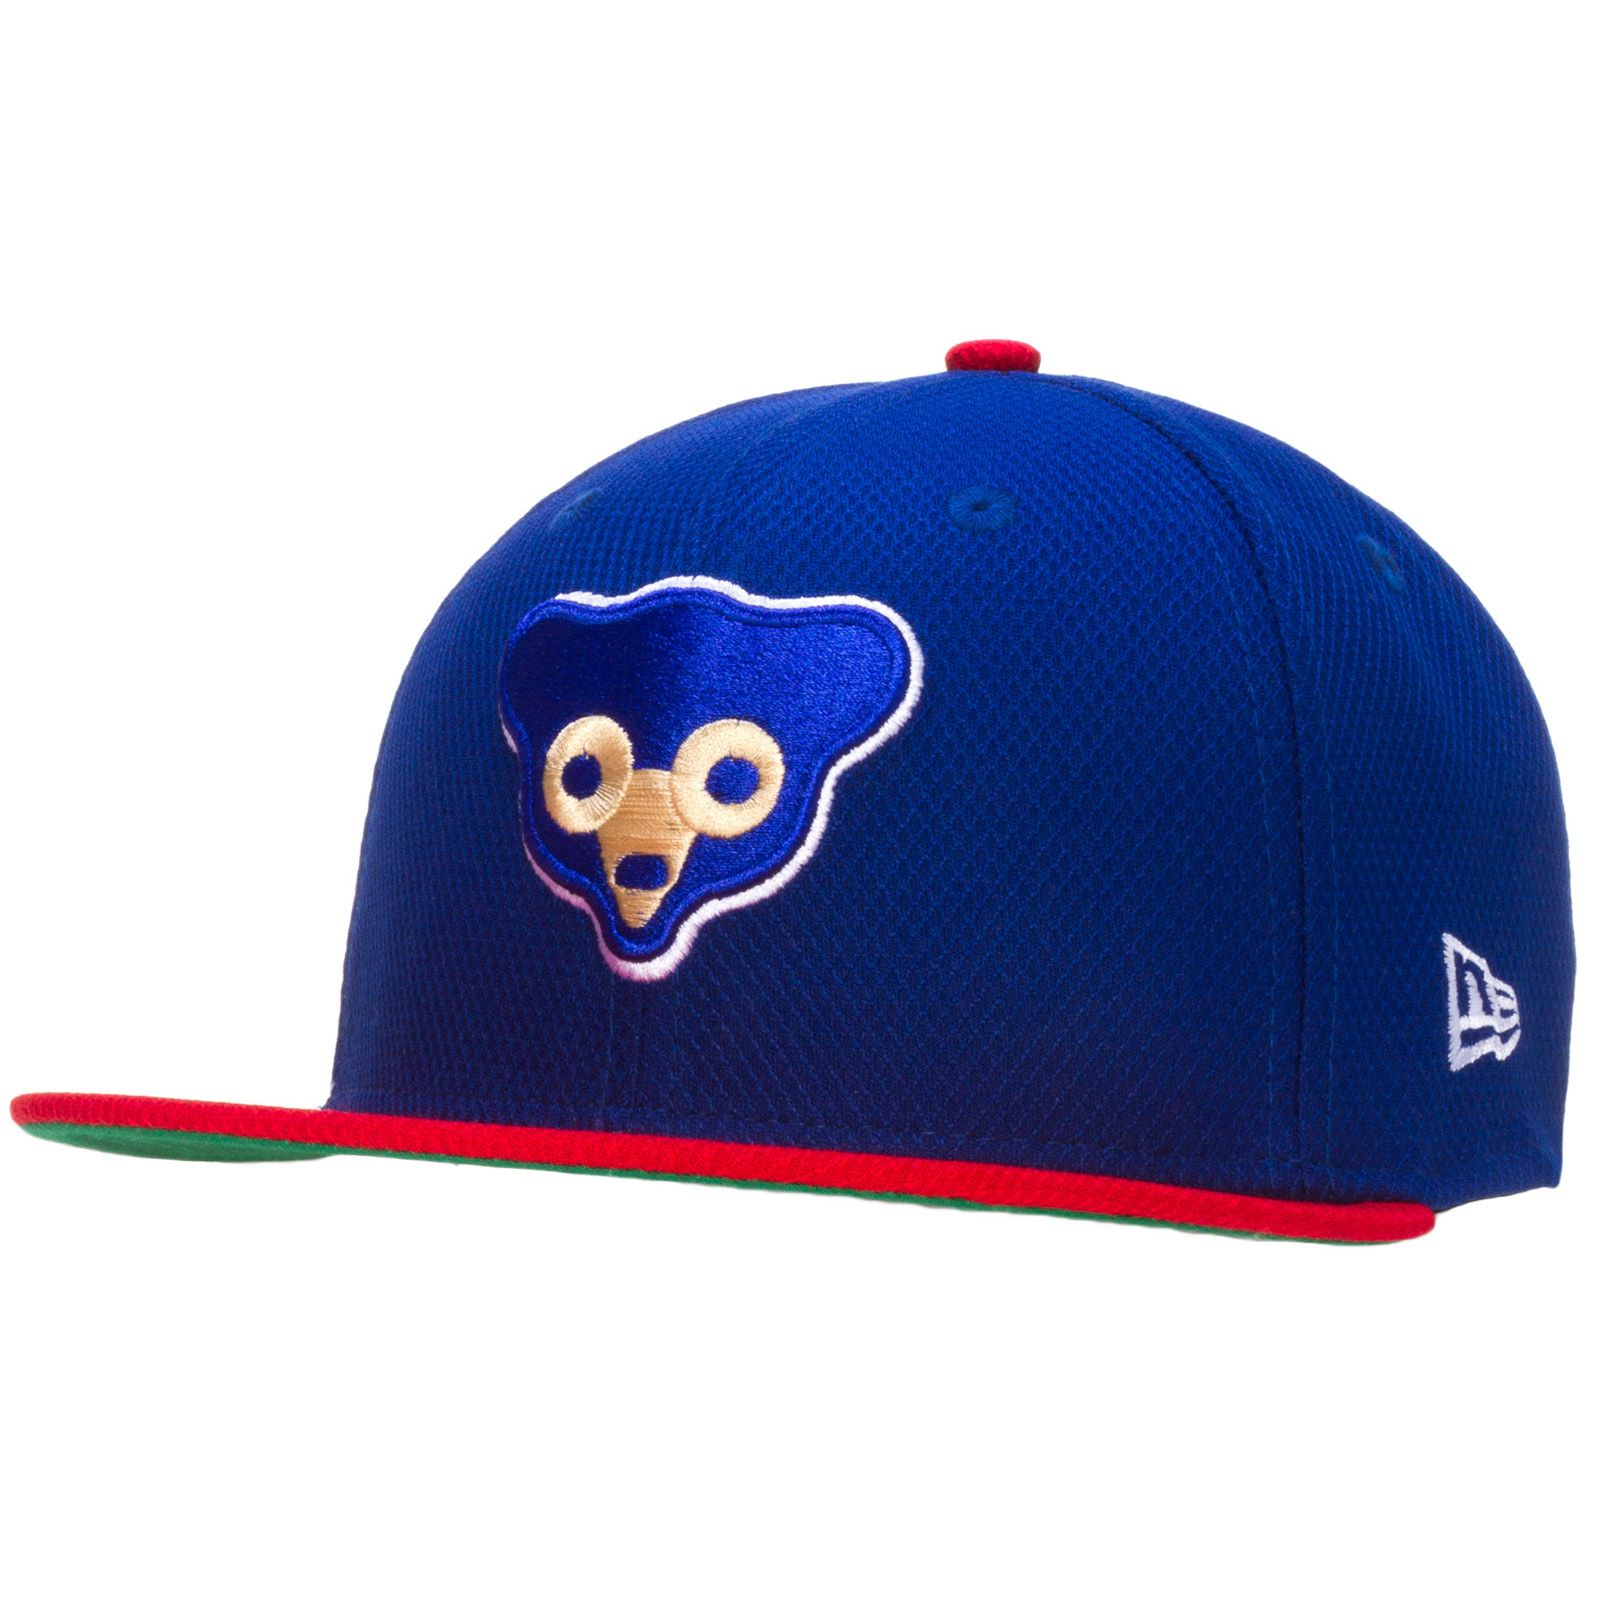 reputable site ddc63 fd957 Chicago Cubs Royal Blue Extra Large Crawl Bear Logo Fitted Flat Bill Hat by New  Era  Chicago  ChicagoCubs  Cubs   Cubs Hats   Chicago cubs fans, Cubs cap,  ...